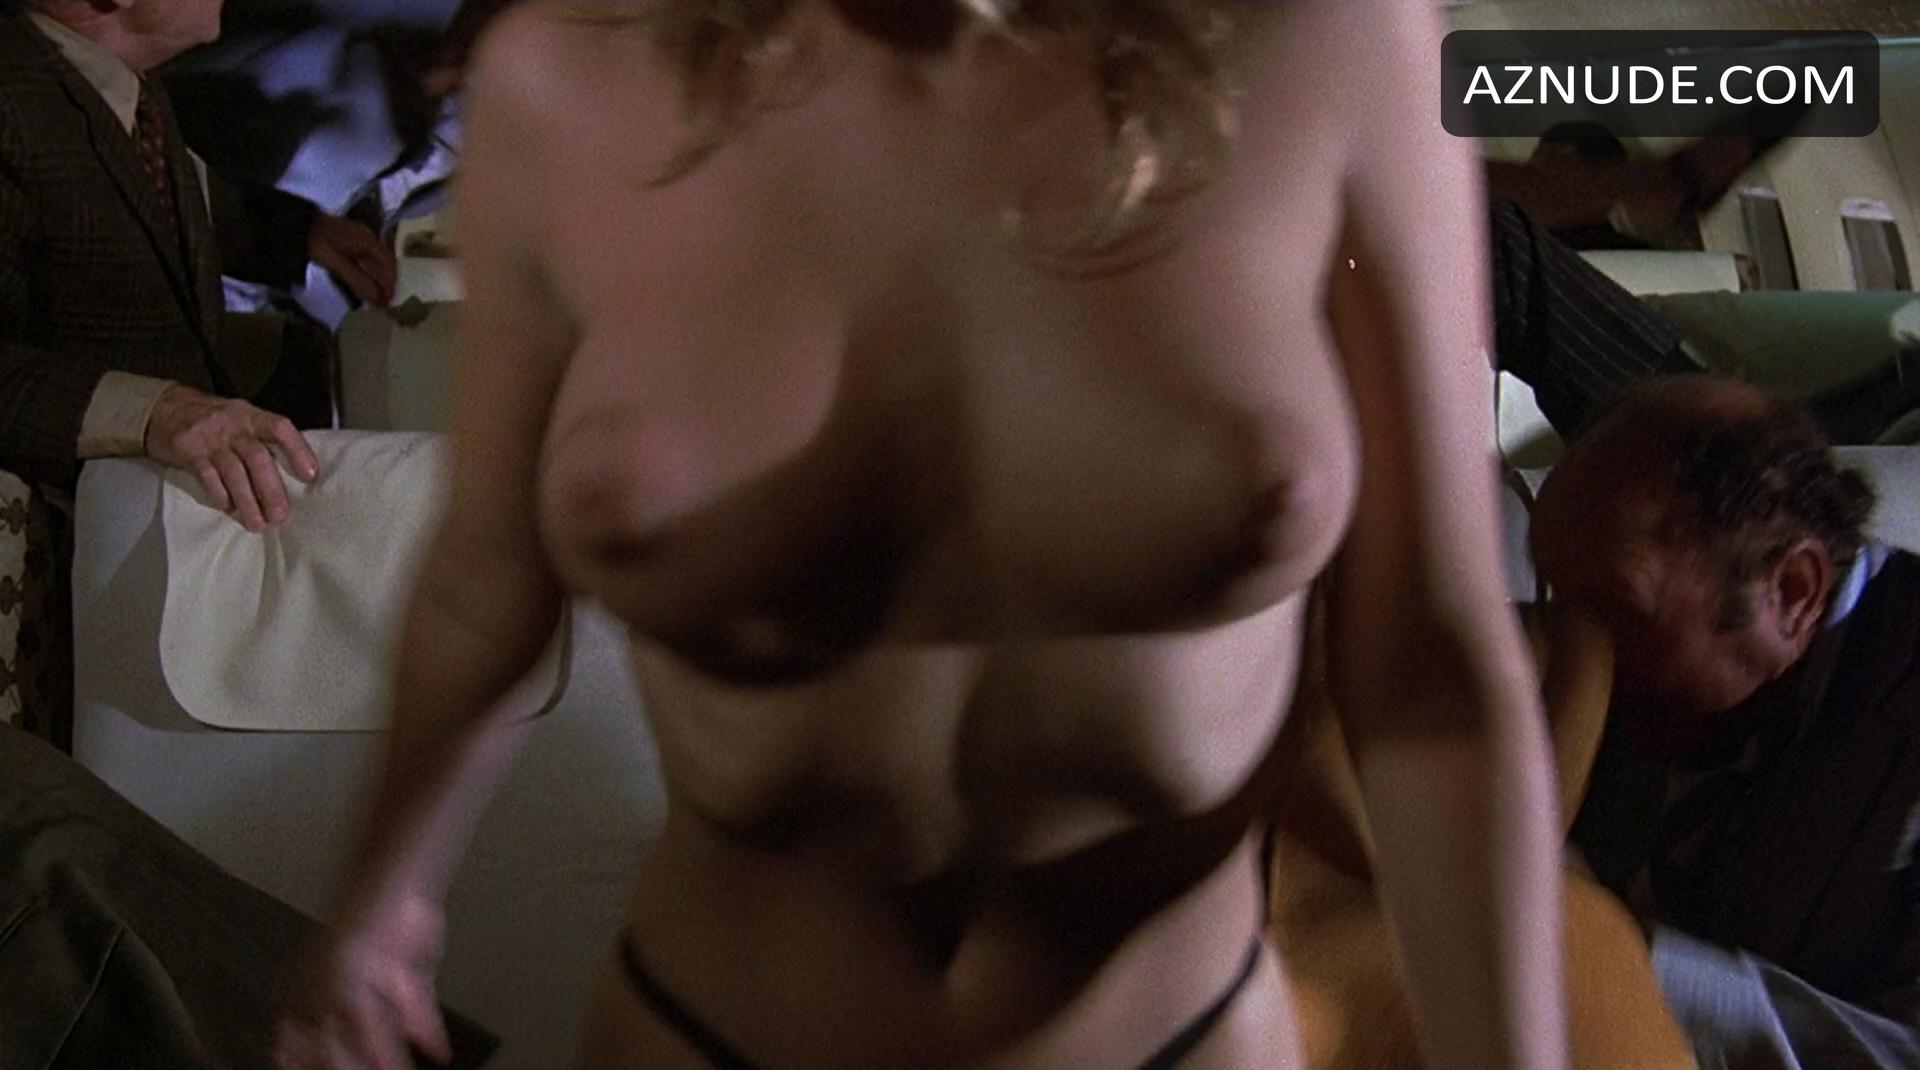 from Jasiah naked girl in movie airplane